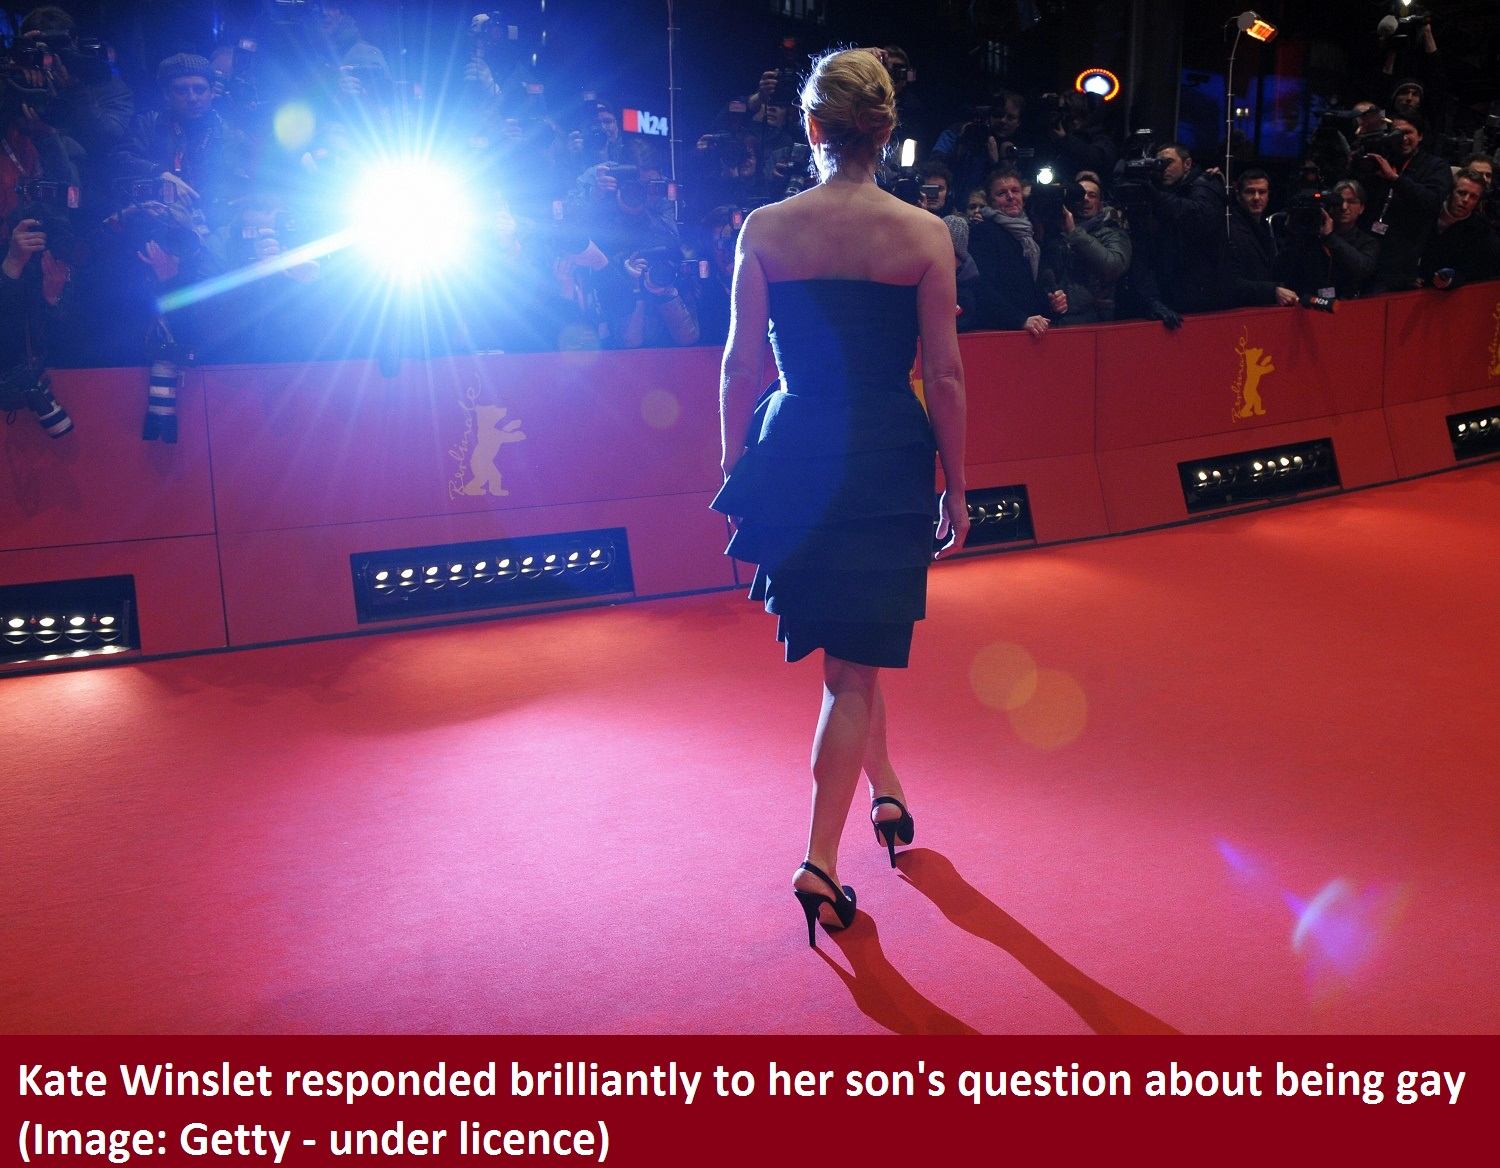 """British actress Kate Winslet poses on the red carpet ahead of the premiere of the film """"The Reader"""" by British director Stephen Daldry and presented out of competition at the 59th Berlinale Film Festival in Berlin February 6, 2009. The Berlinale is taking place from February 5 to 15, 2009 with 18 productions vying for the coveted Golden Bear for best picture to be awarded February 14. AFP PHOTO DDP/MICHAEL GOTTSCHALK GERMANY OUT (Photo credit should read MICHAEL GOTTSCHALK/AFP/Getty Images)"""